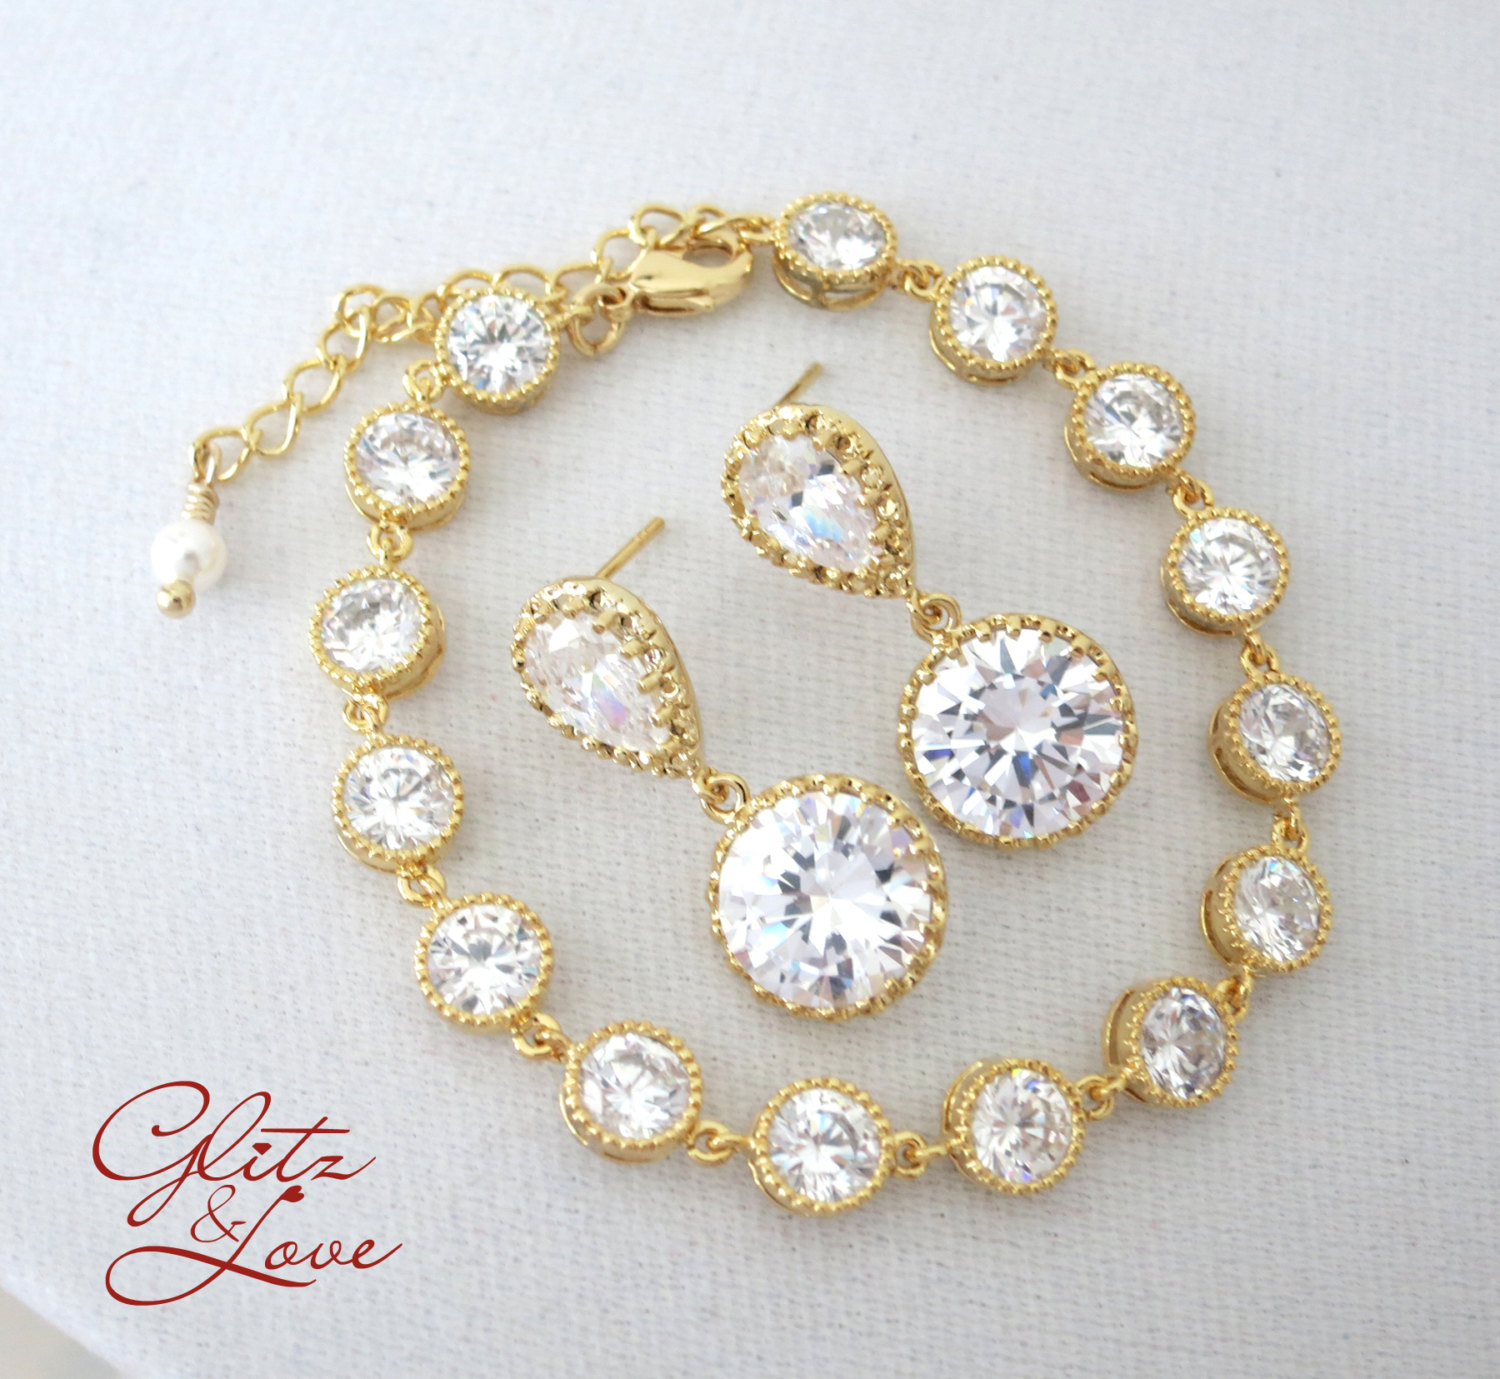 Gold Bracelet Set from Glitz & Love